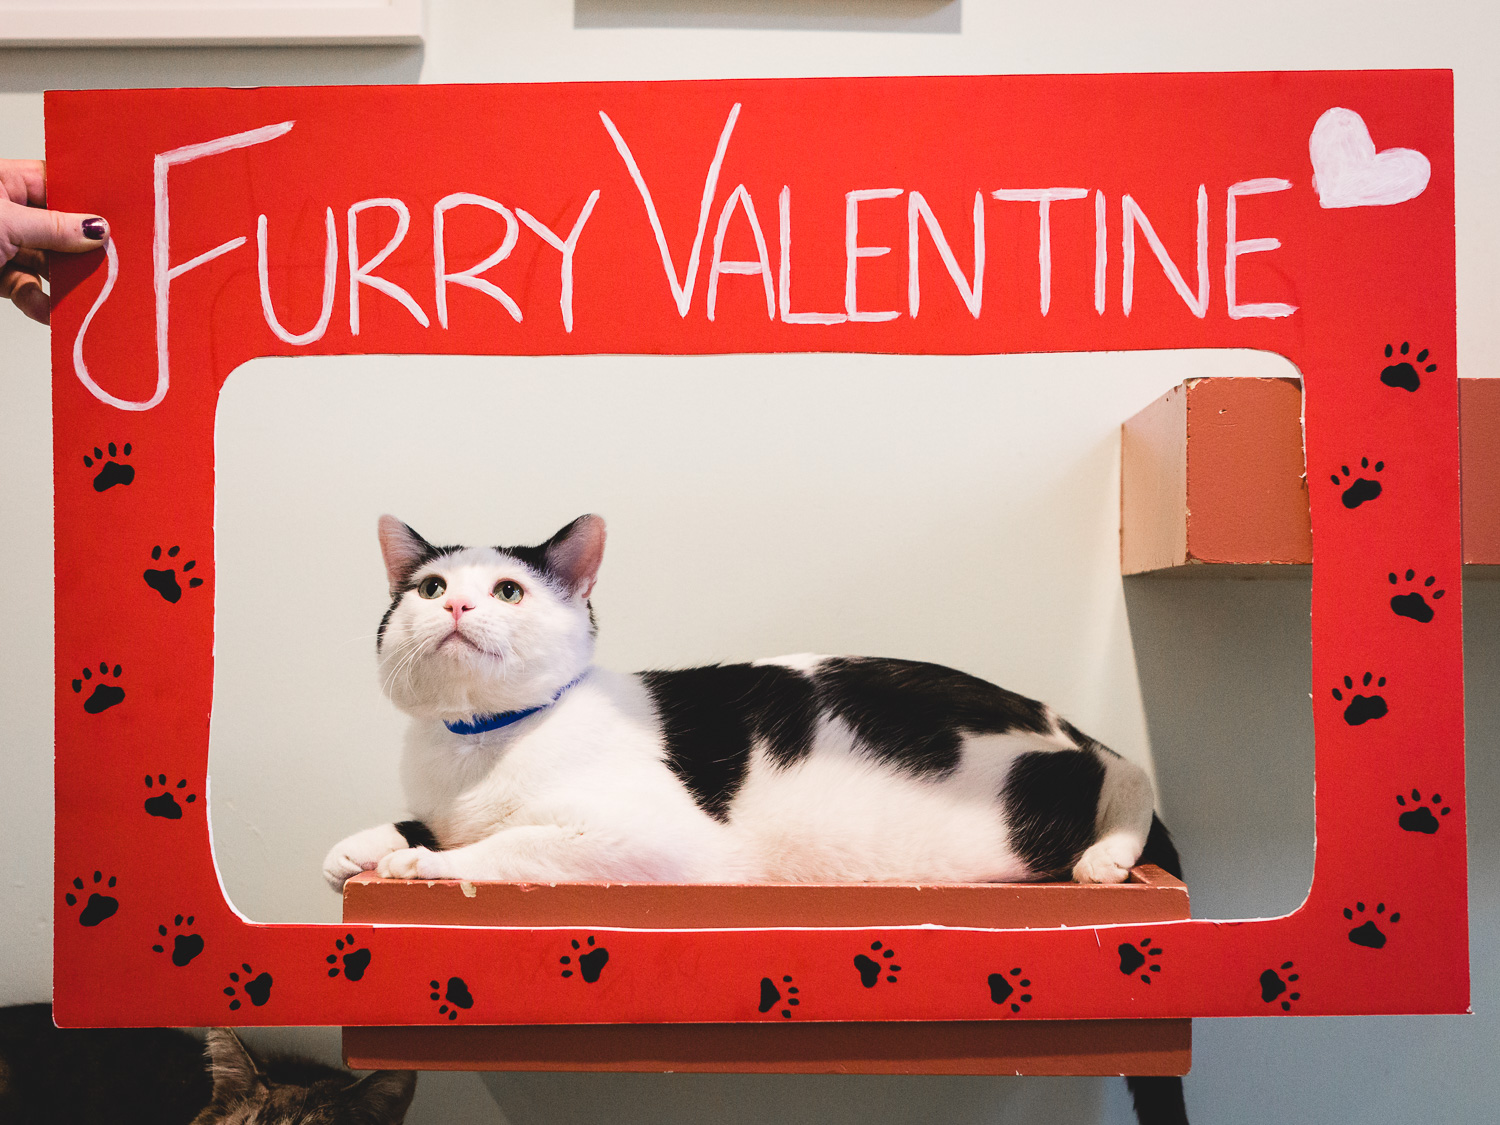 Furry Valentine Booth In Chicago